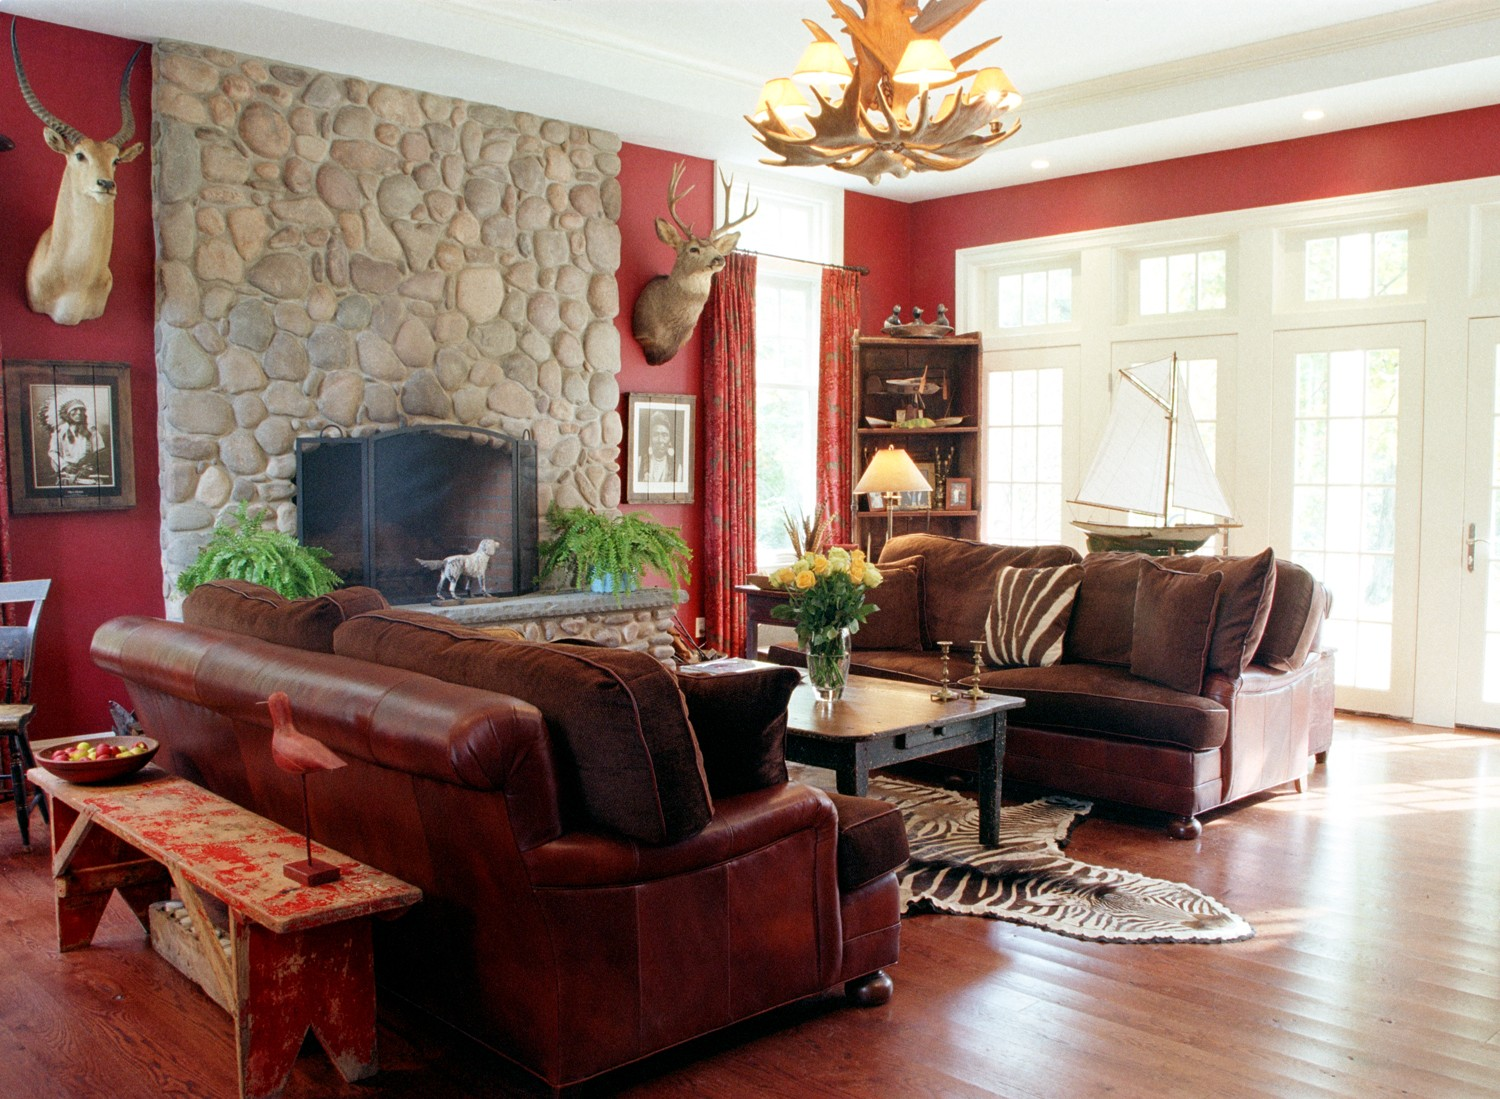 Creative Design Ideas For Decorating A Living Room | Dream House ...